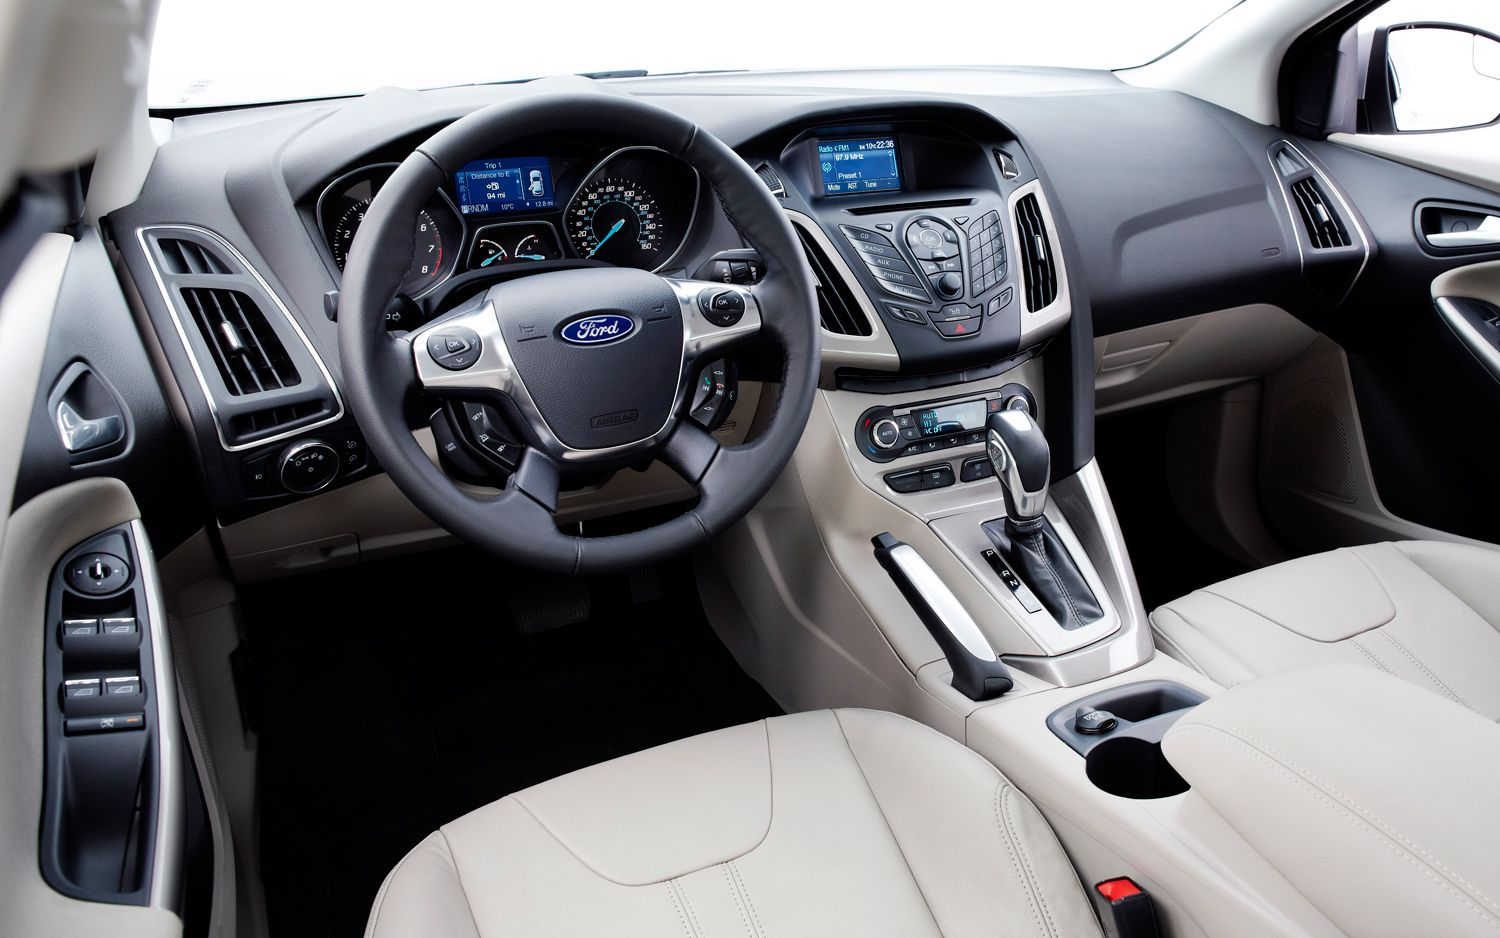 Awesome 2012 Ford Fusion Interior Lights Car Images Hd 2012 Ford